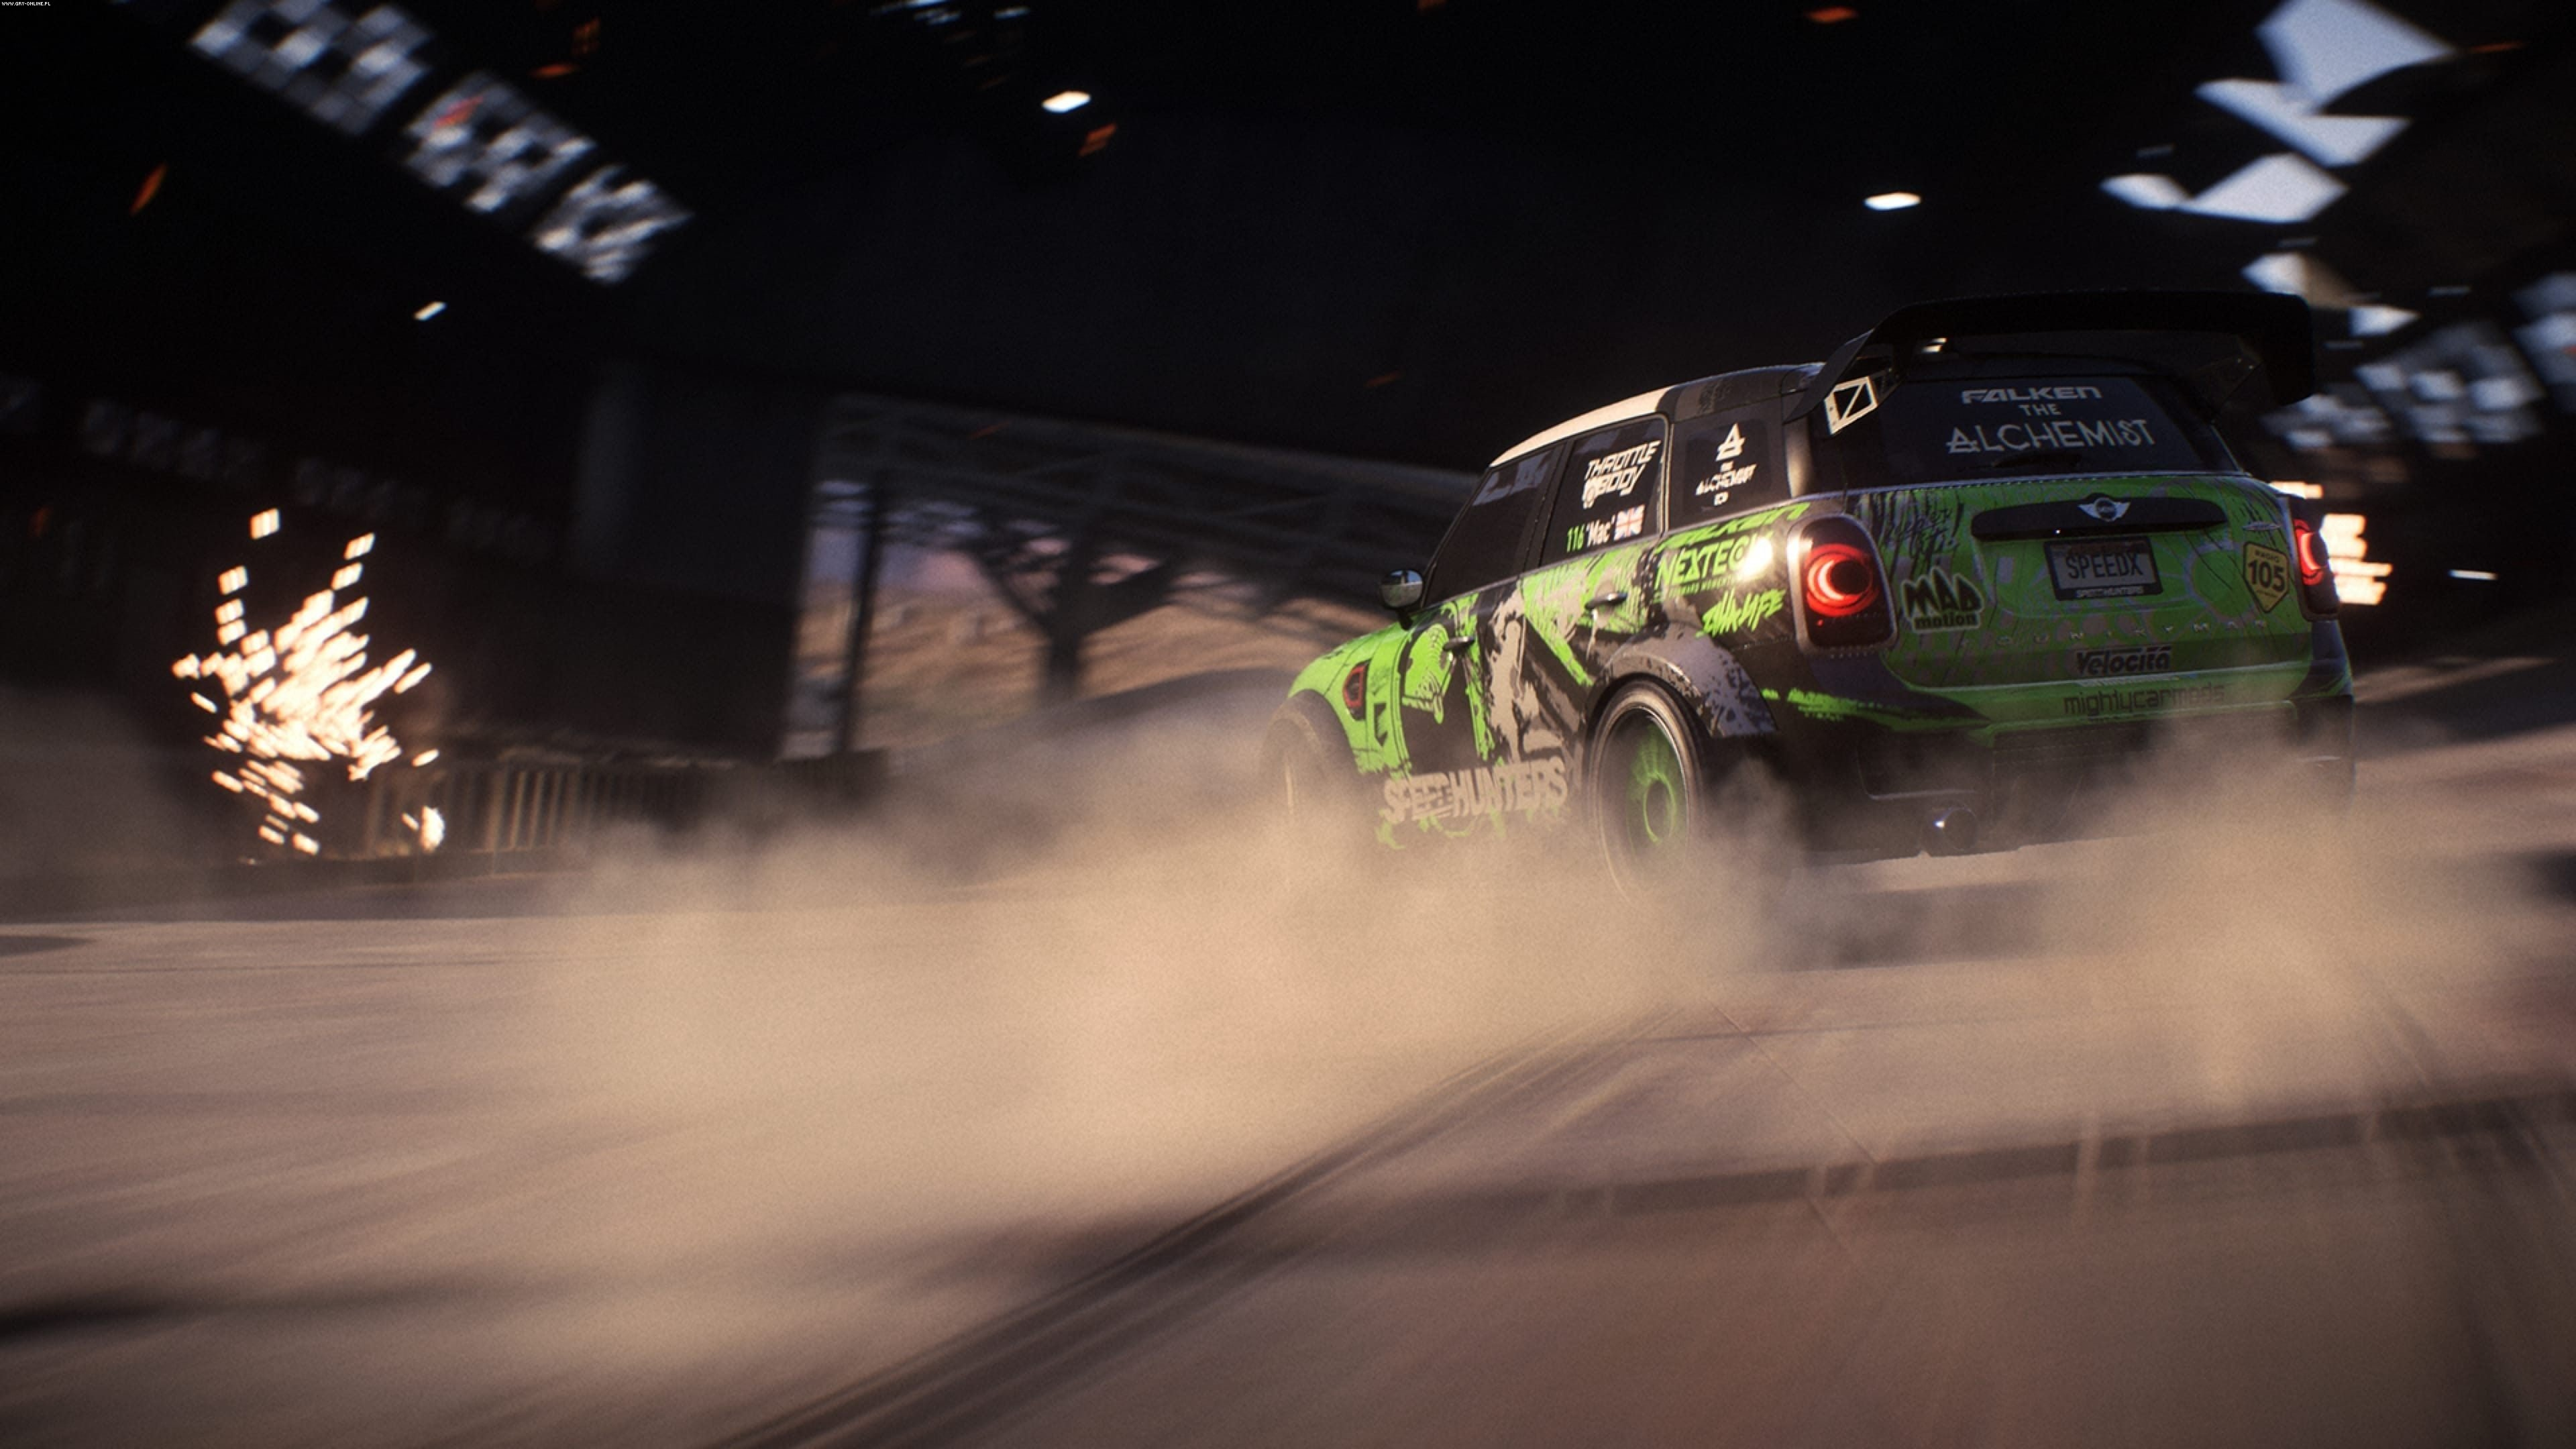 Need for Speed: Payback PC, PS4, XONE Games Image 1/43, Ghost Games, Electronic Arts Inc.